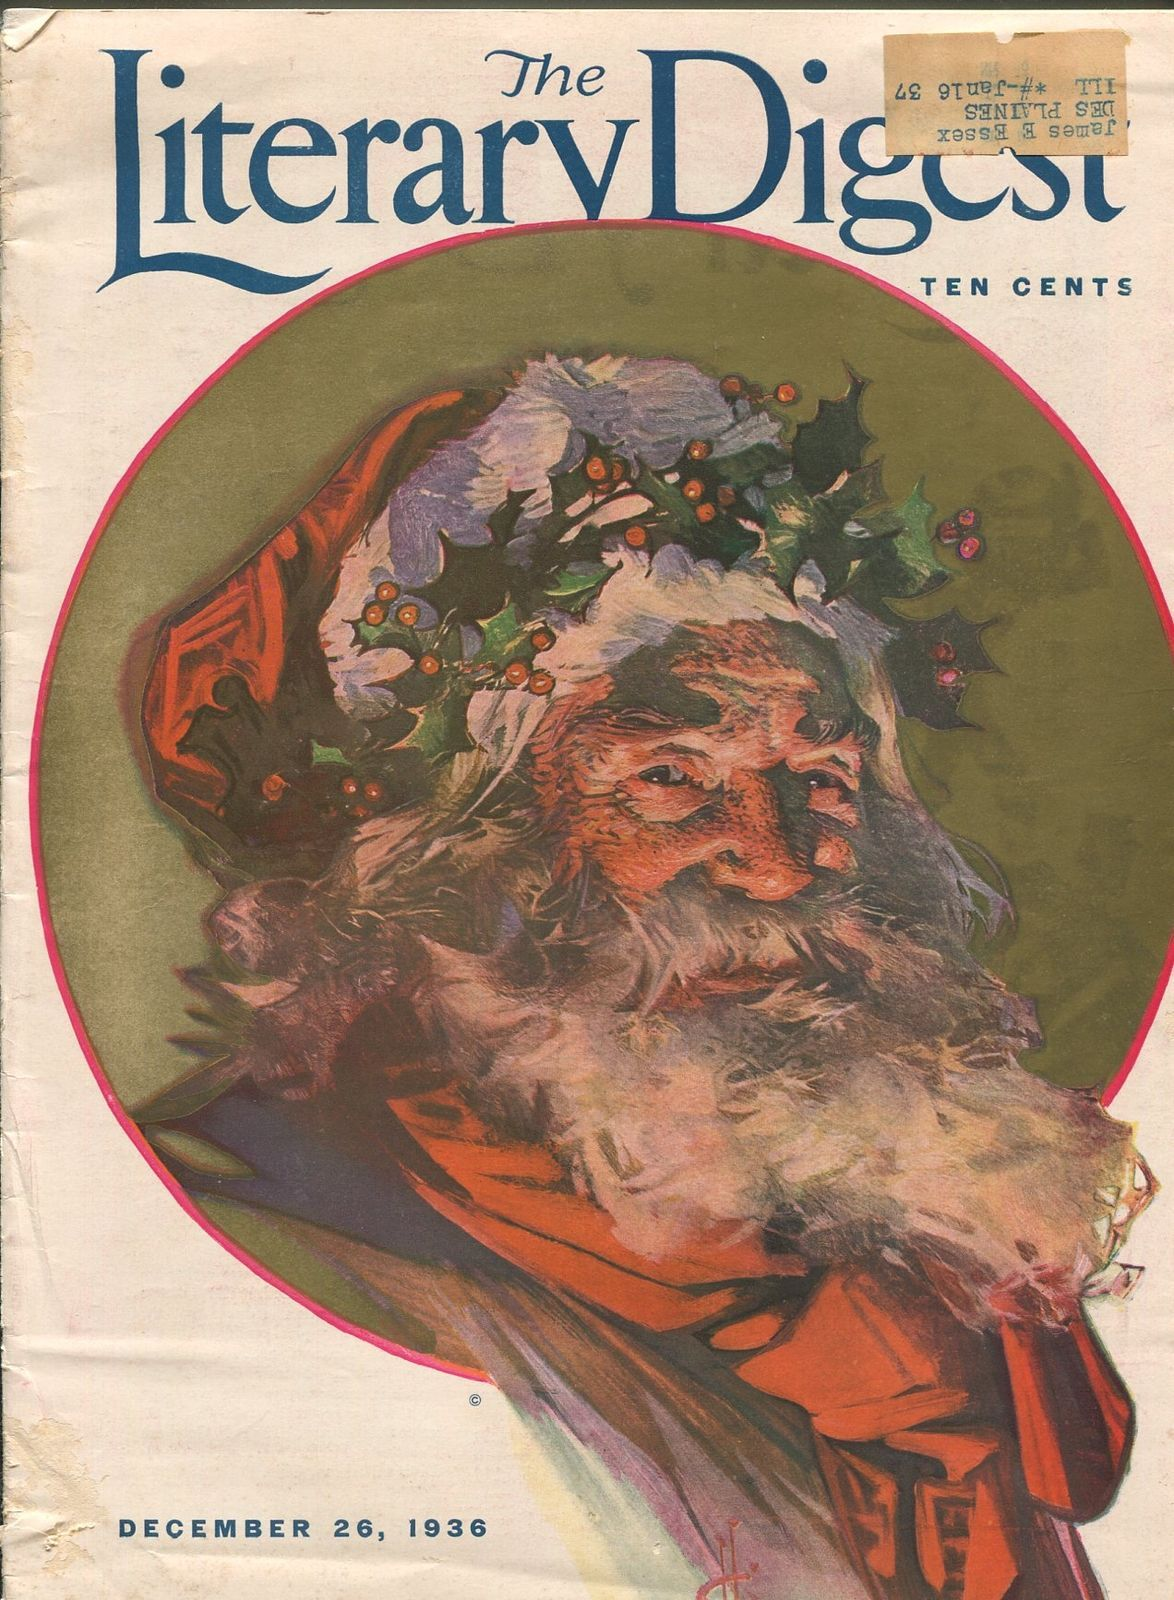 Primary image for LITERARY DIGEST 12/26/1936-SANTA CLAUS COVER-LEYENDECKER-H.G. WELLS-vg+